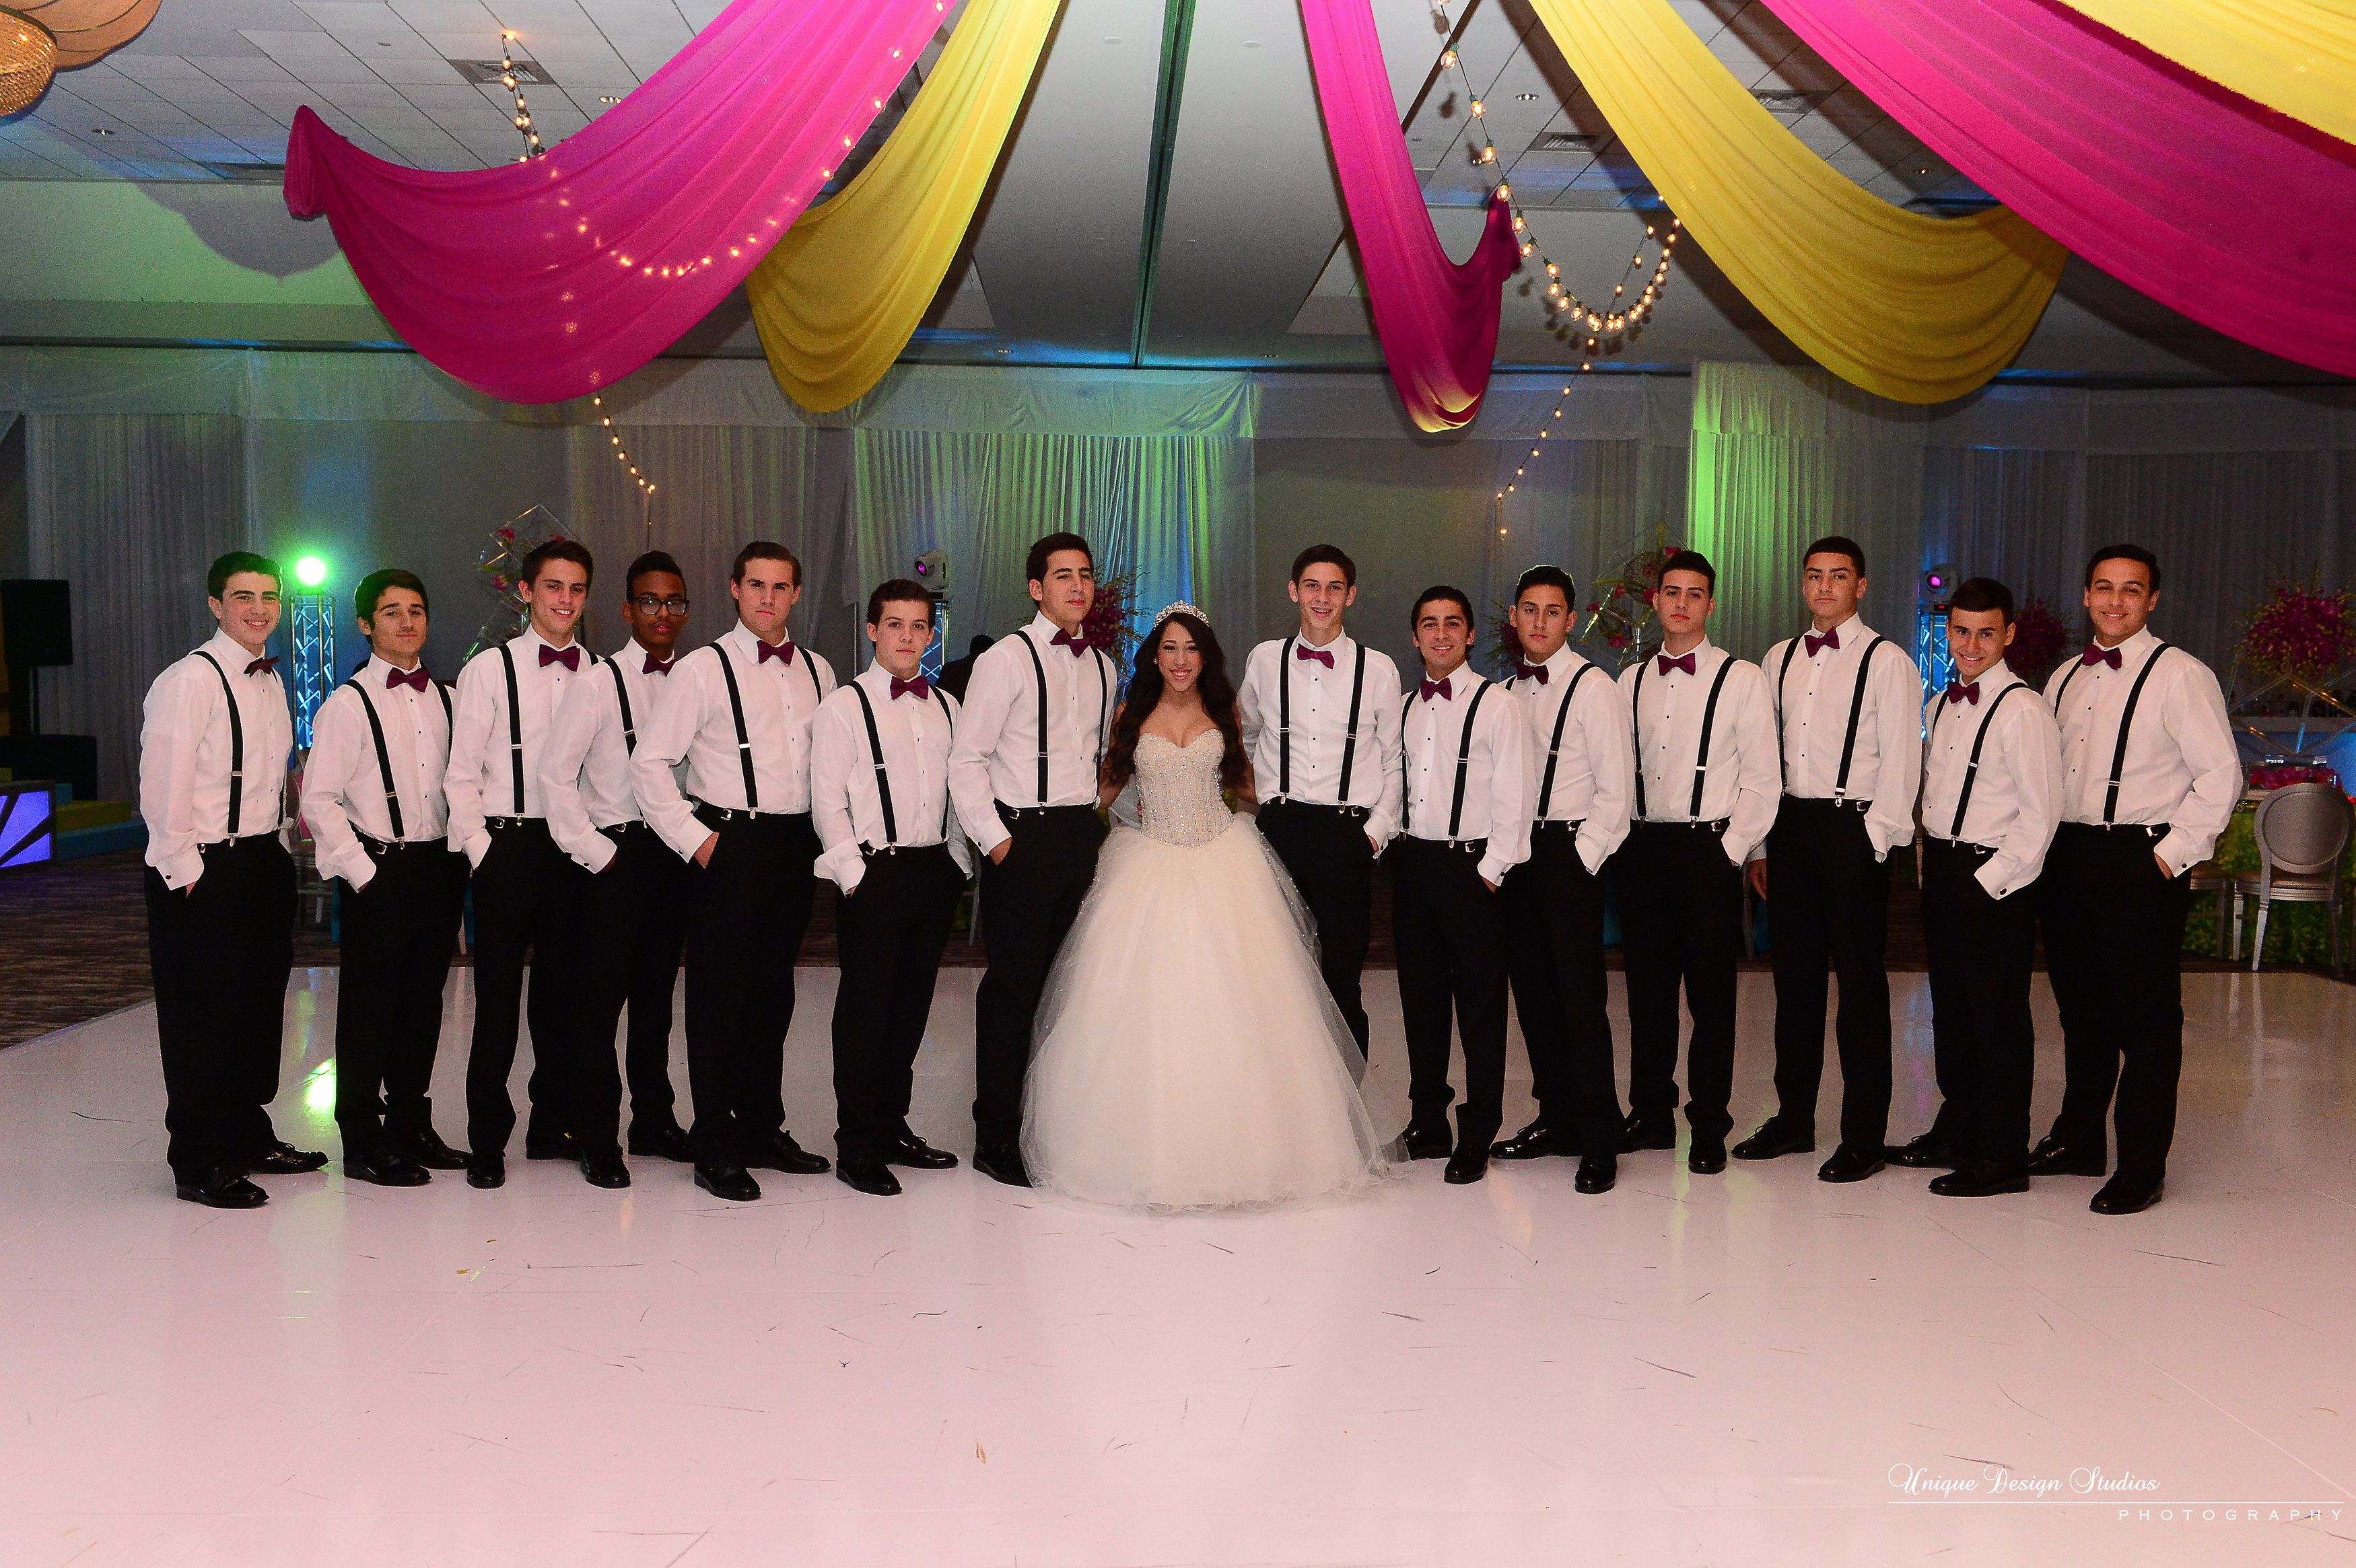 quince picture ideas - Google Search